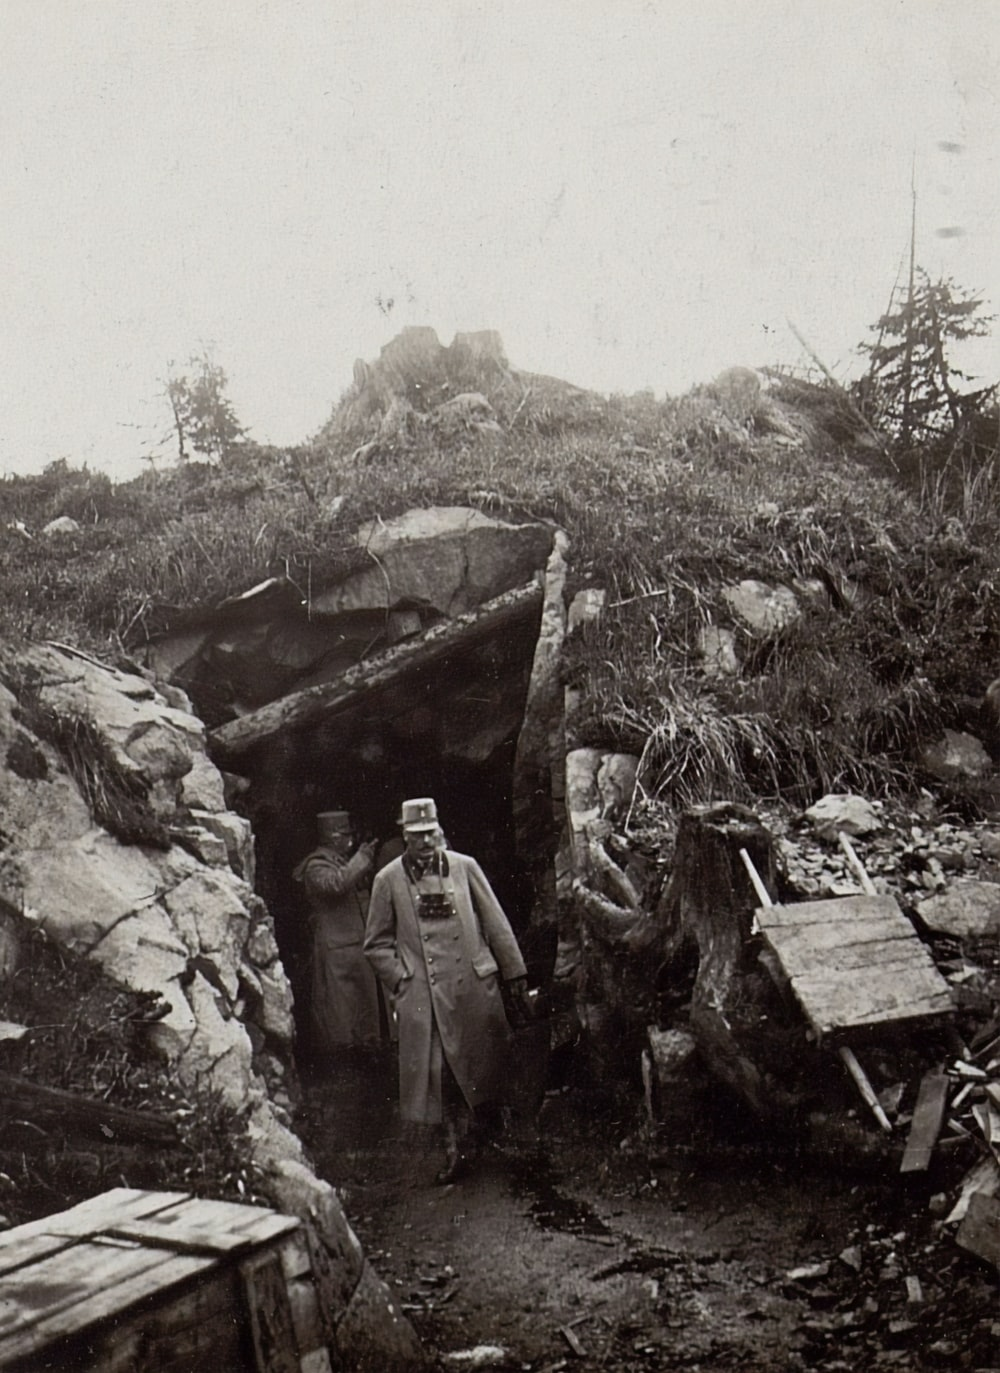 grayscale photography of men coming out of a mining tunnel